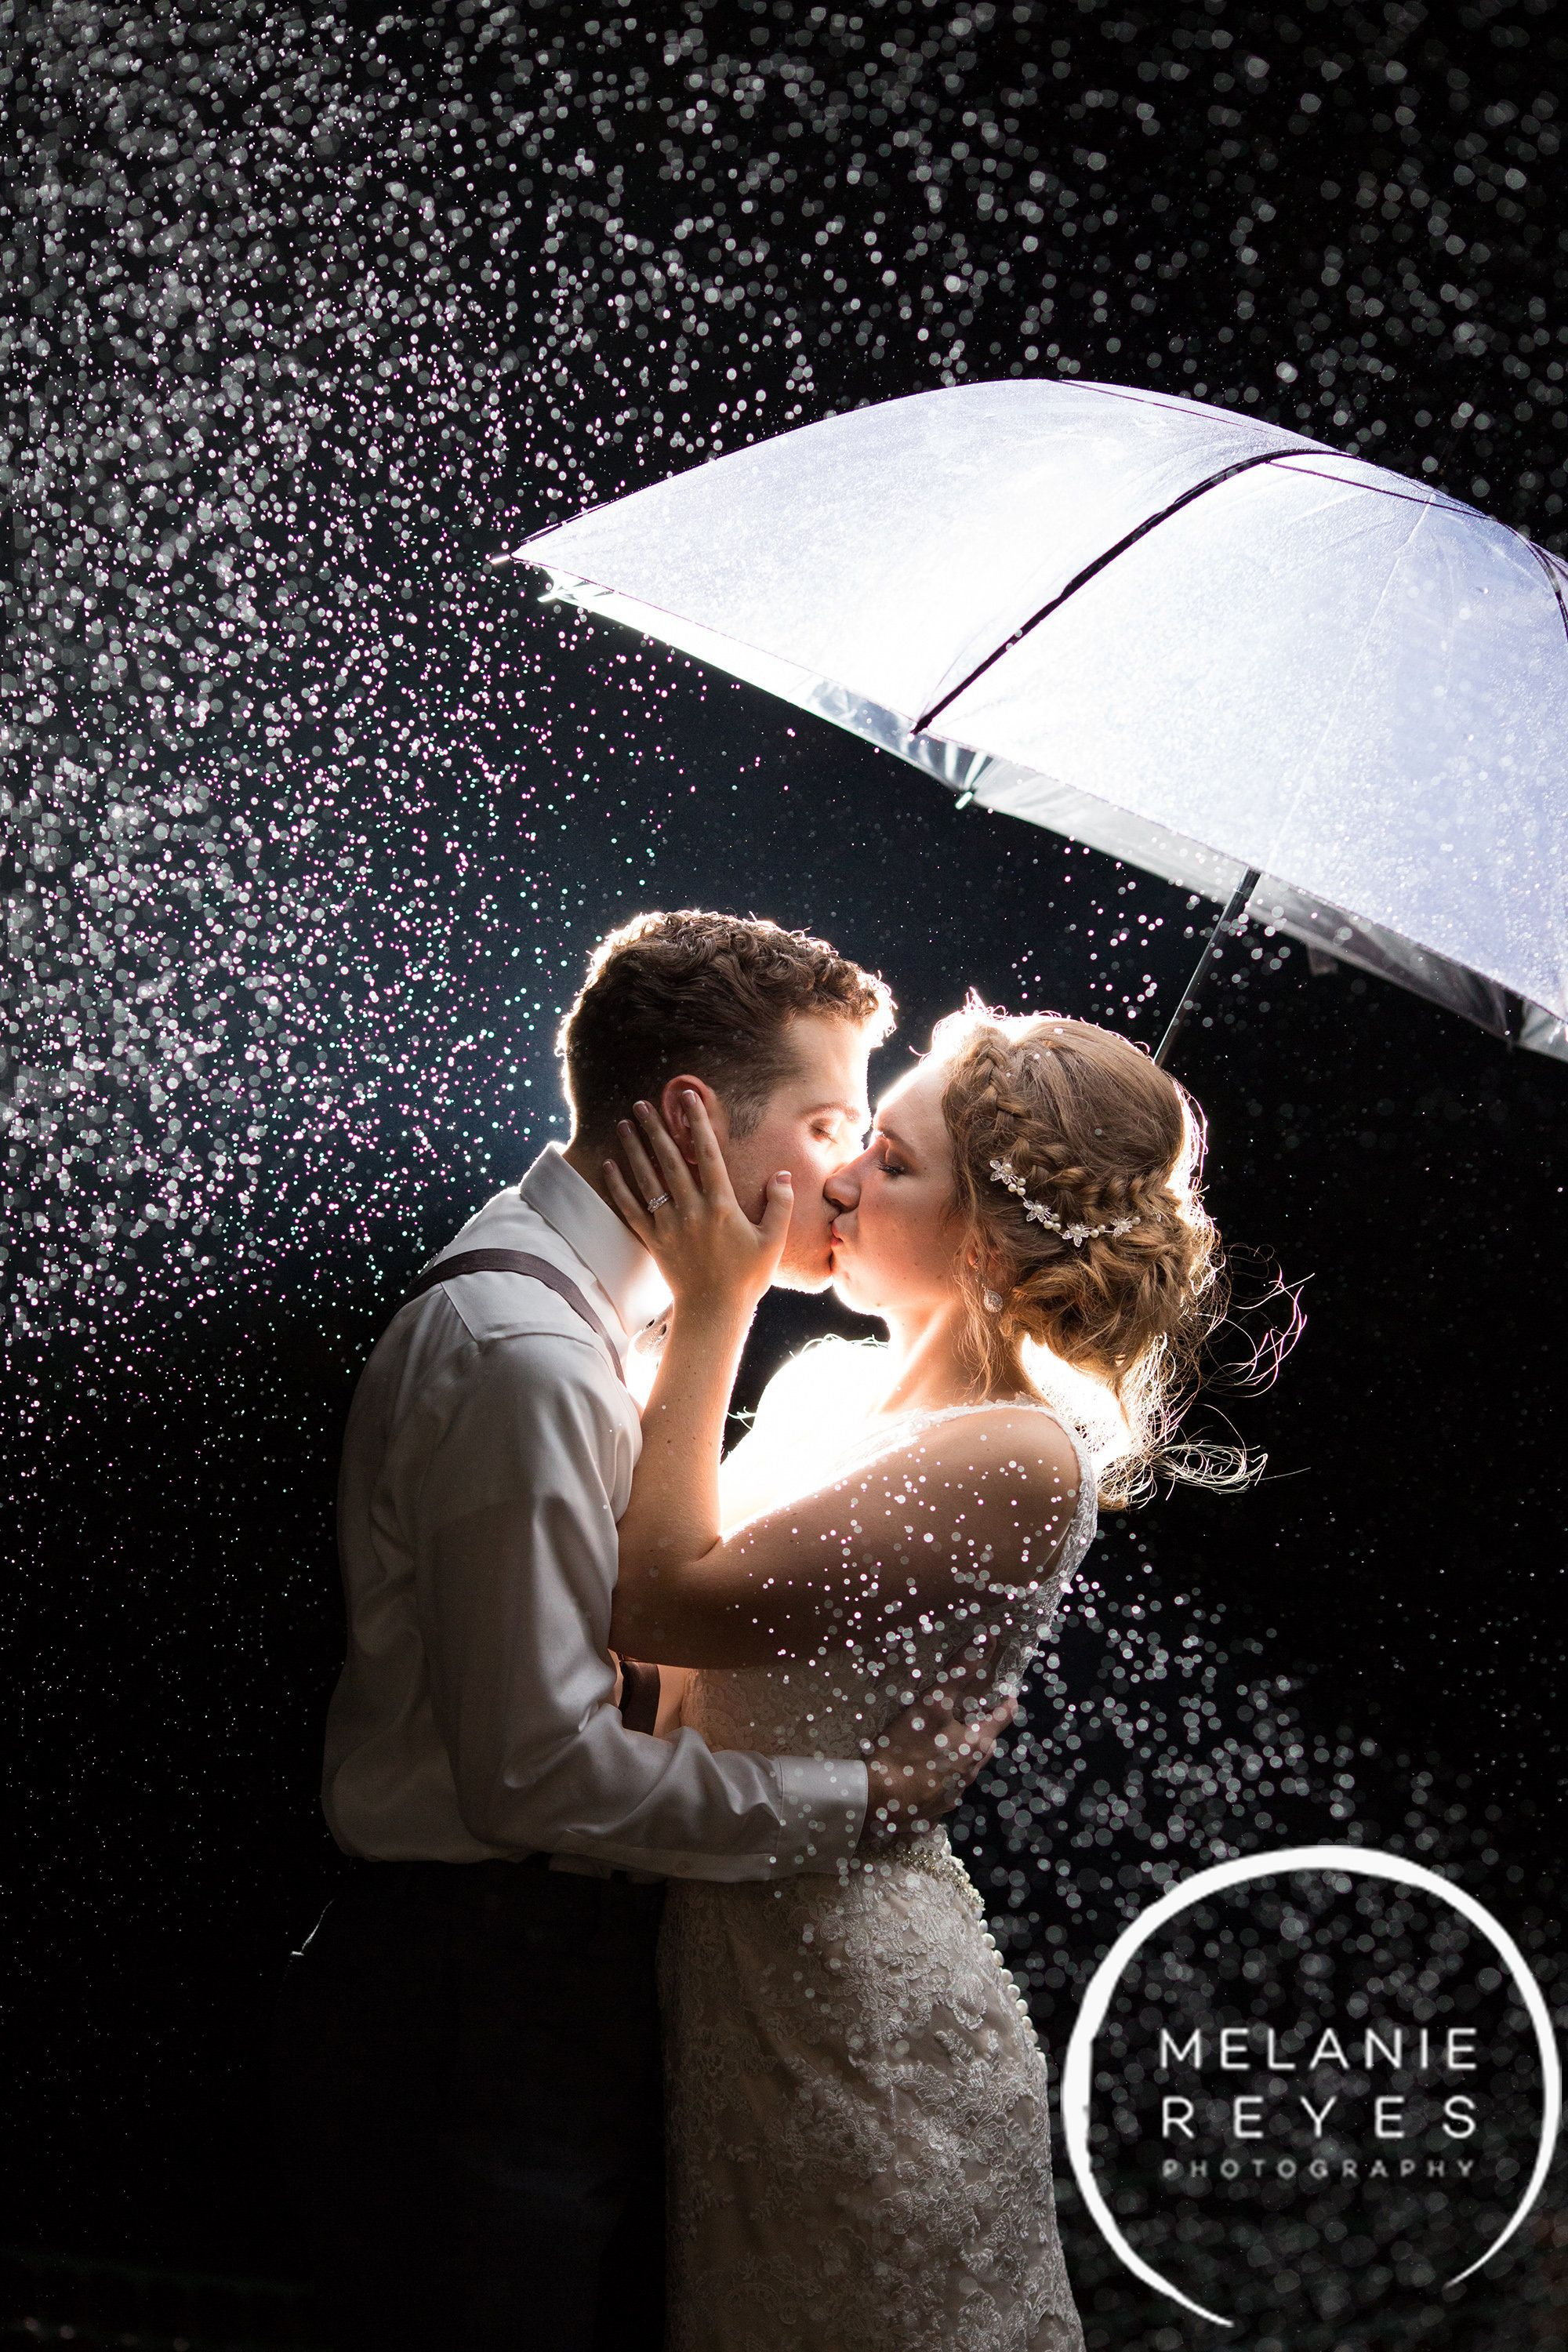 21 Utterly Charming Real Wedding Photos To Kick Off